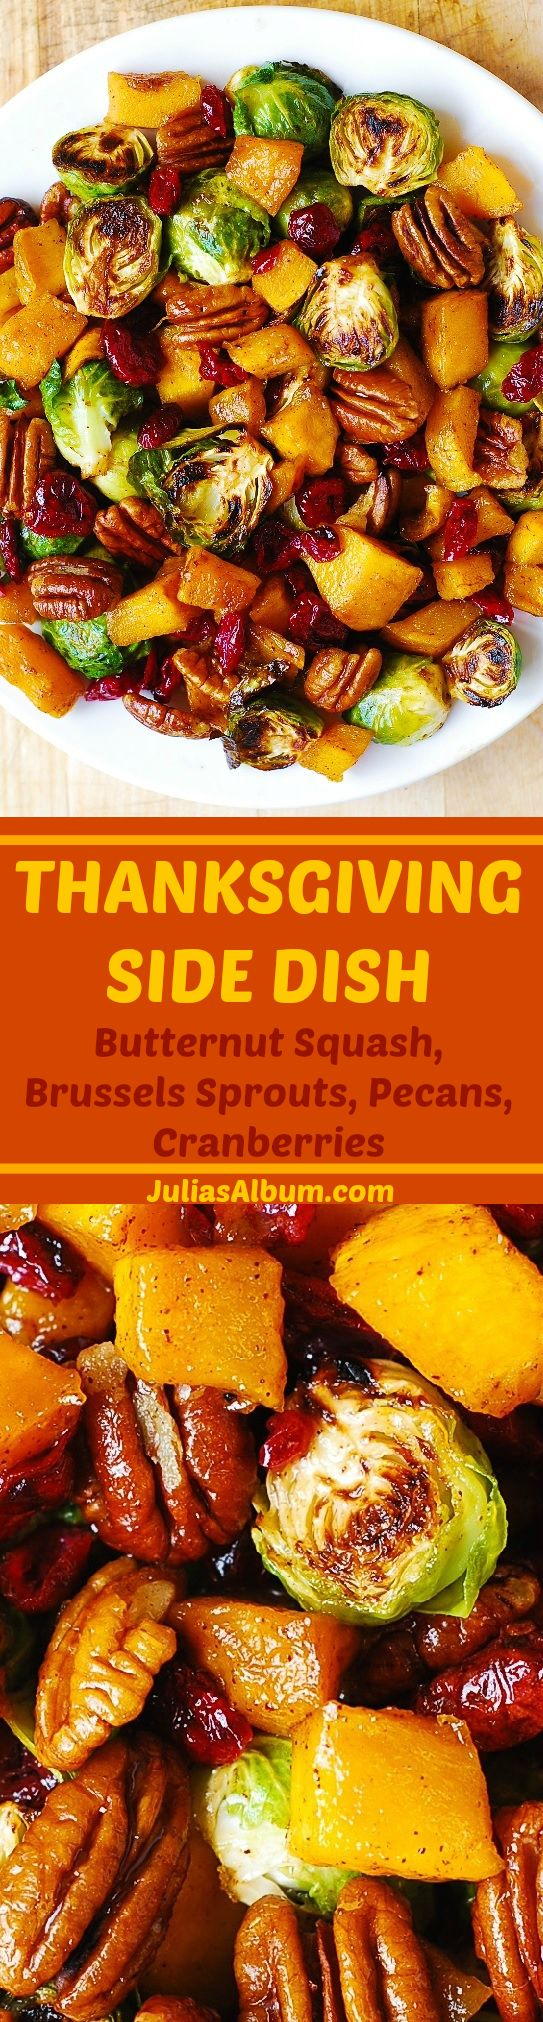 HOLIDAY BOARD: Roasted Brussels Sprouts, Cinnamon Butternut Squas...